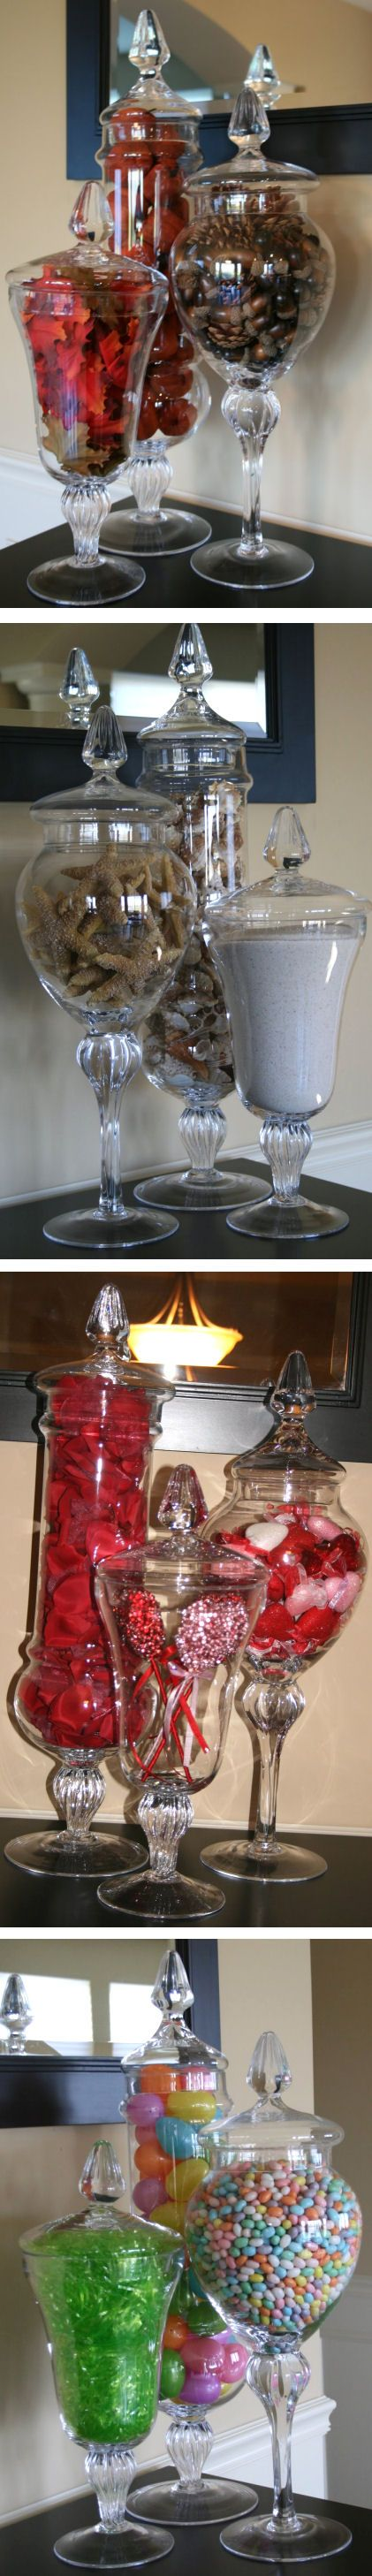 Seasonal Apothecary Jar Displays. Like the idea, could use any glass containers